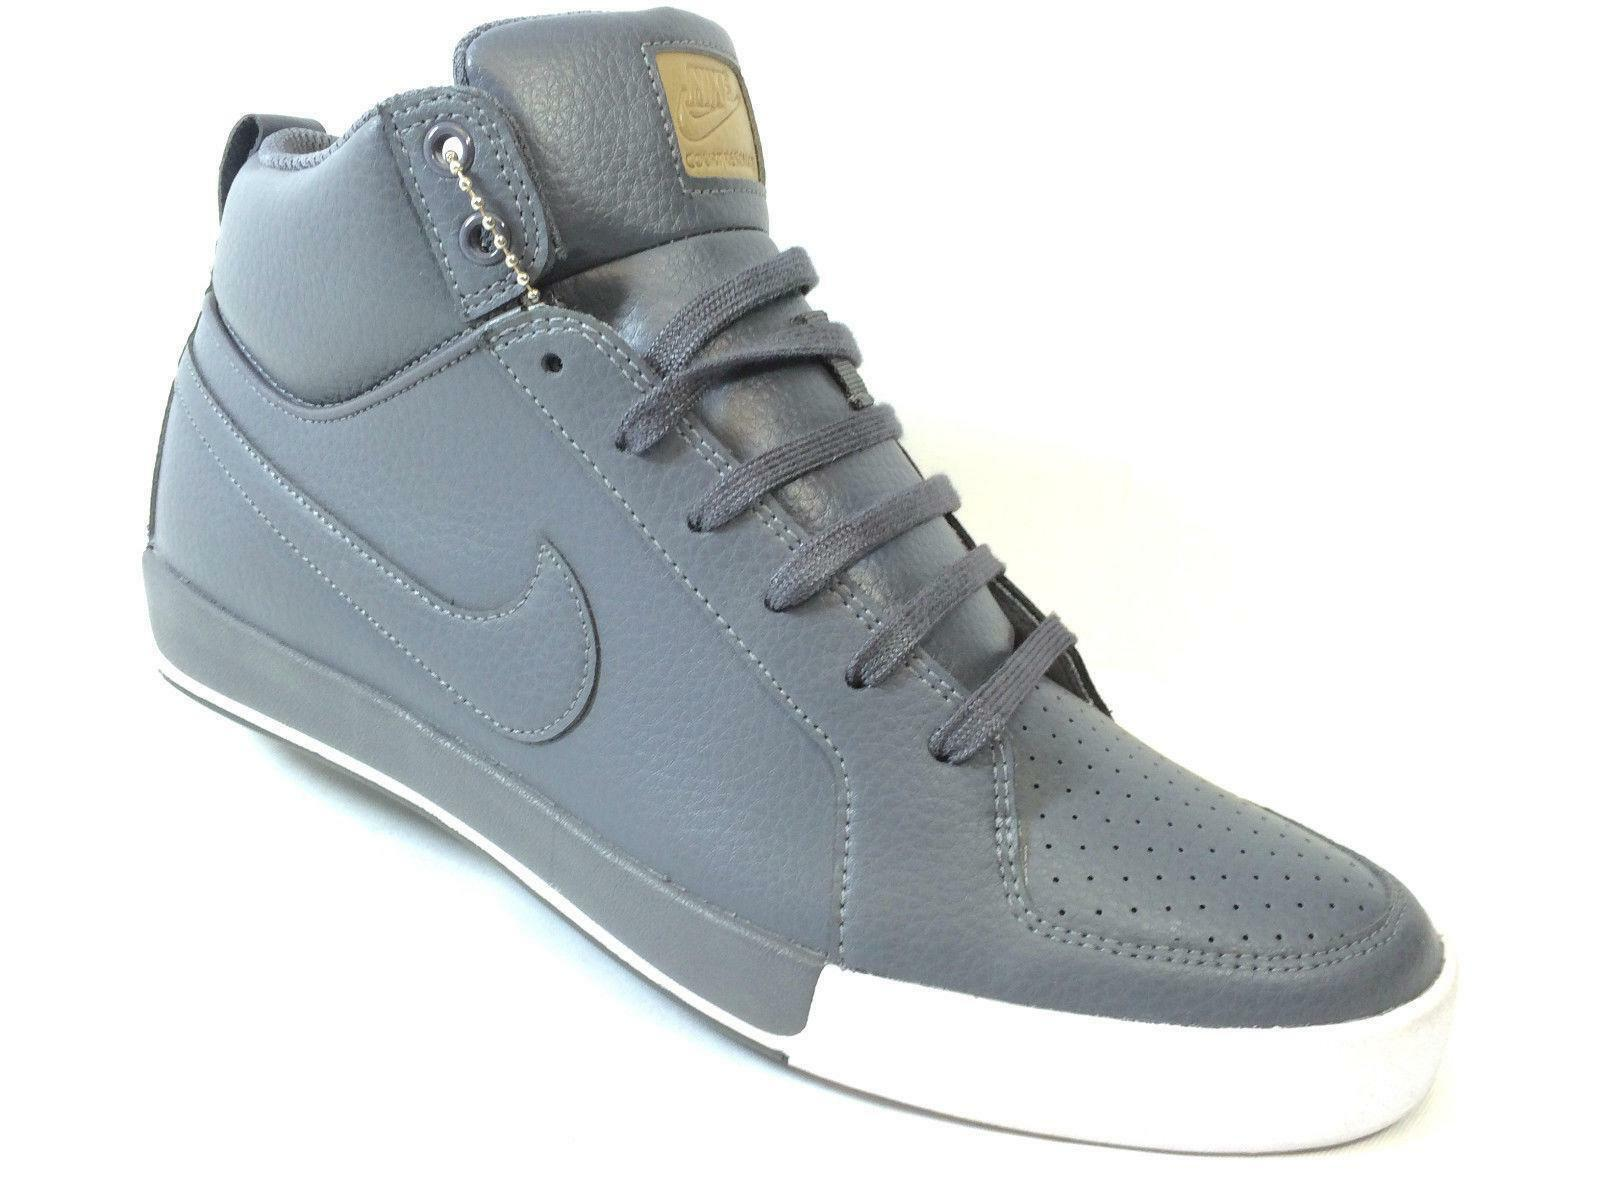 Mens NIKE COURT RESONATE MID LEATHER Trainers 534833 0027.5  EUR 42 US 8.5